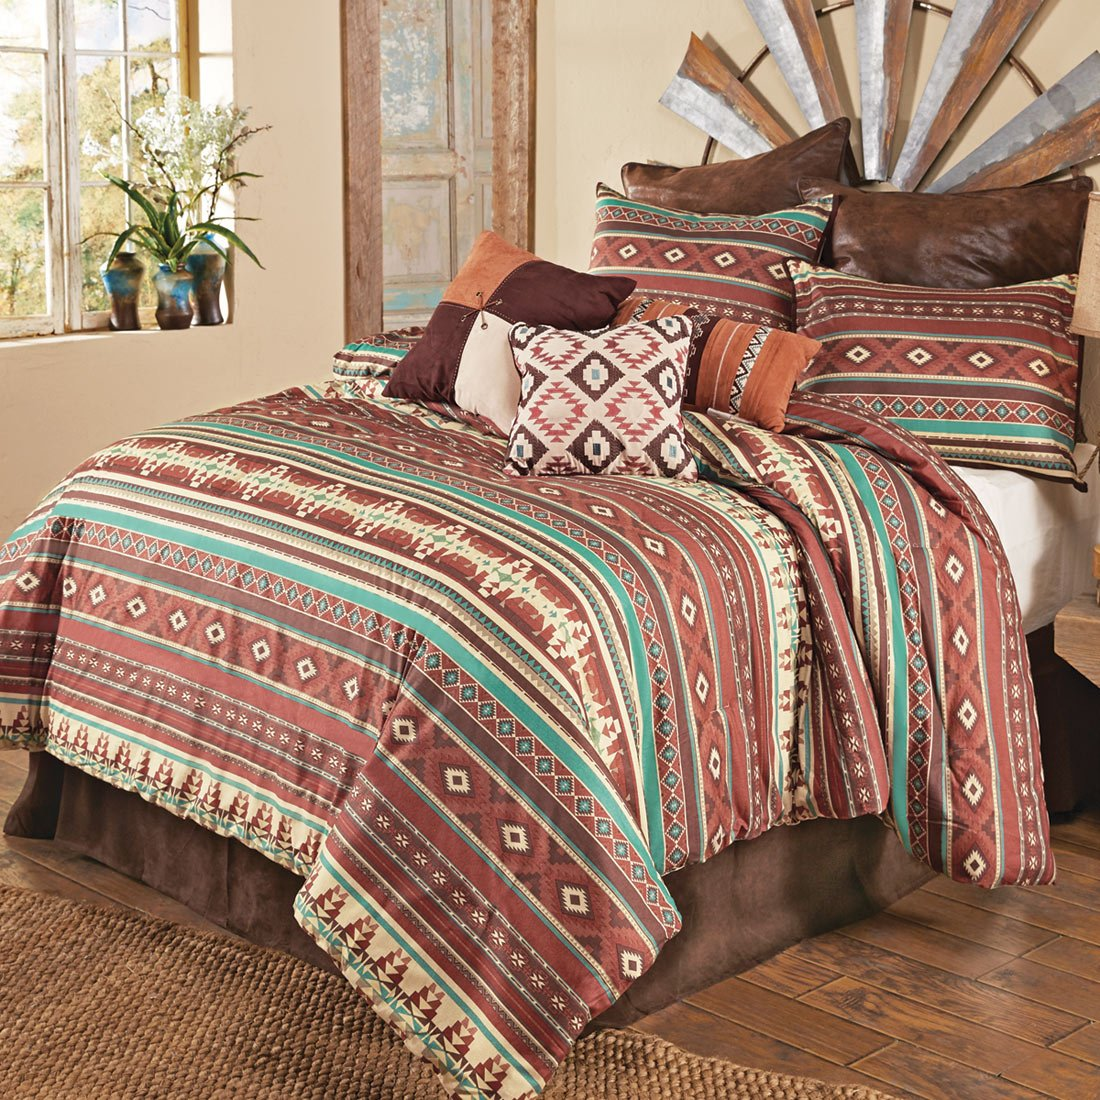 BLACK FOREST DECOR Sante Fe Spice Comforter Set - Cal King by BLACK FOREST DECOR